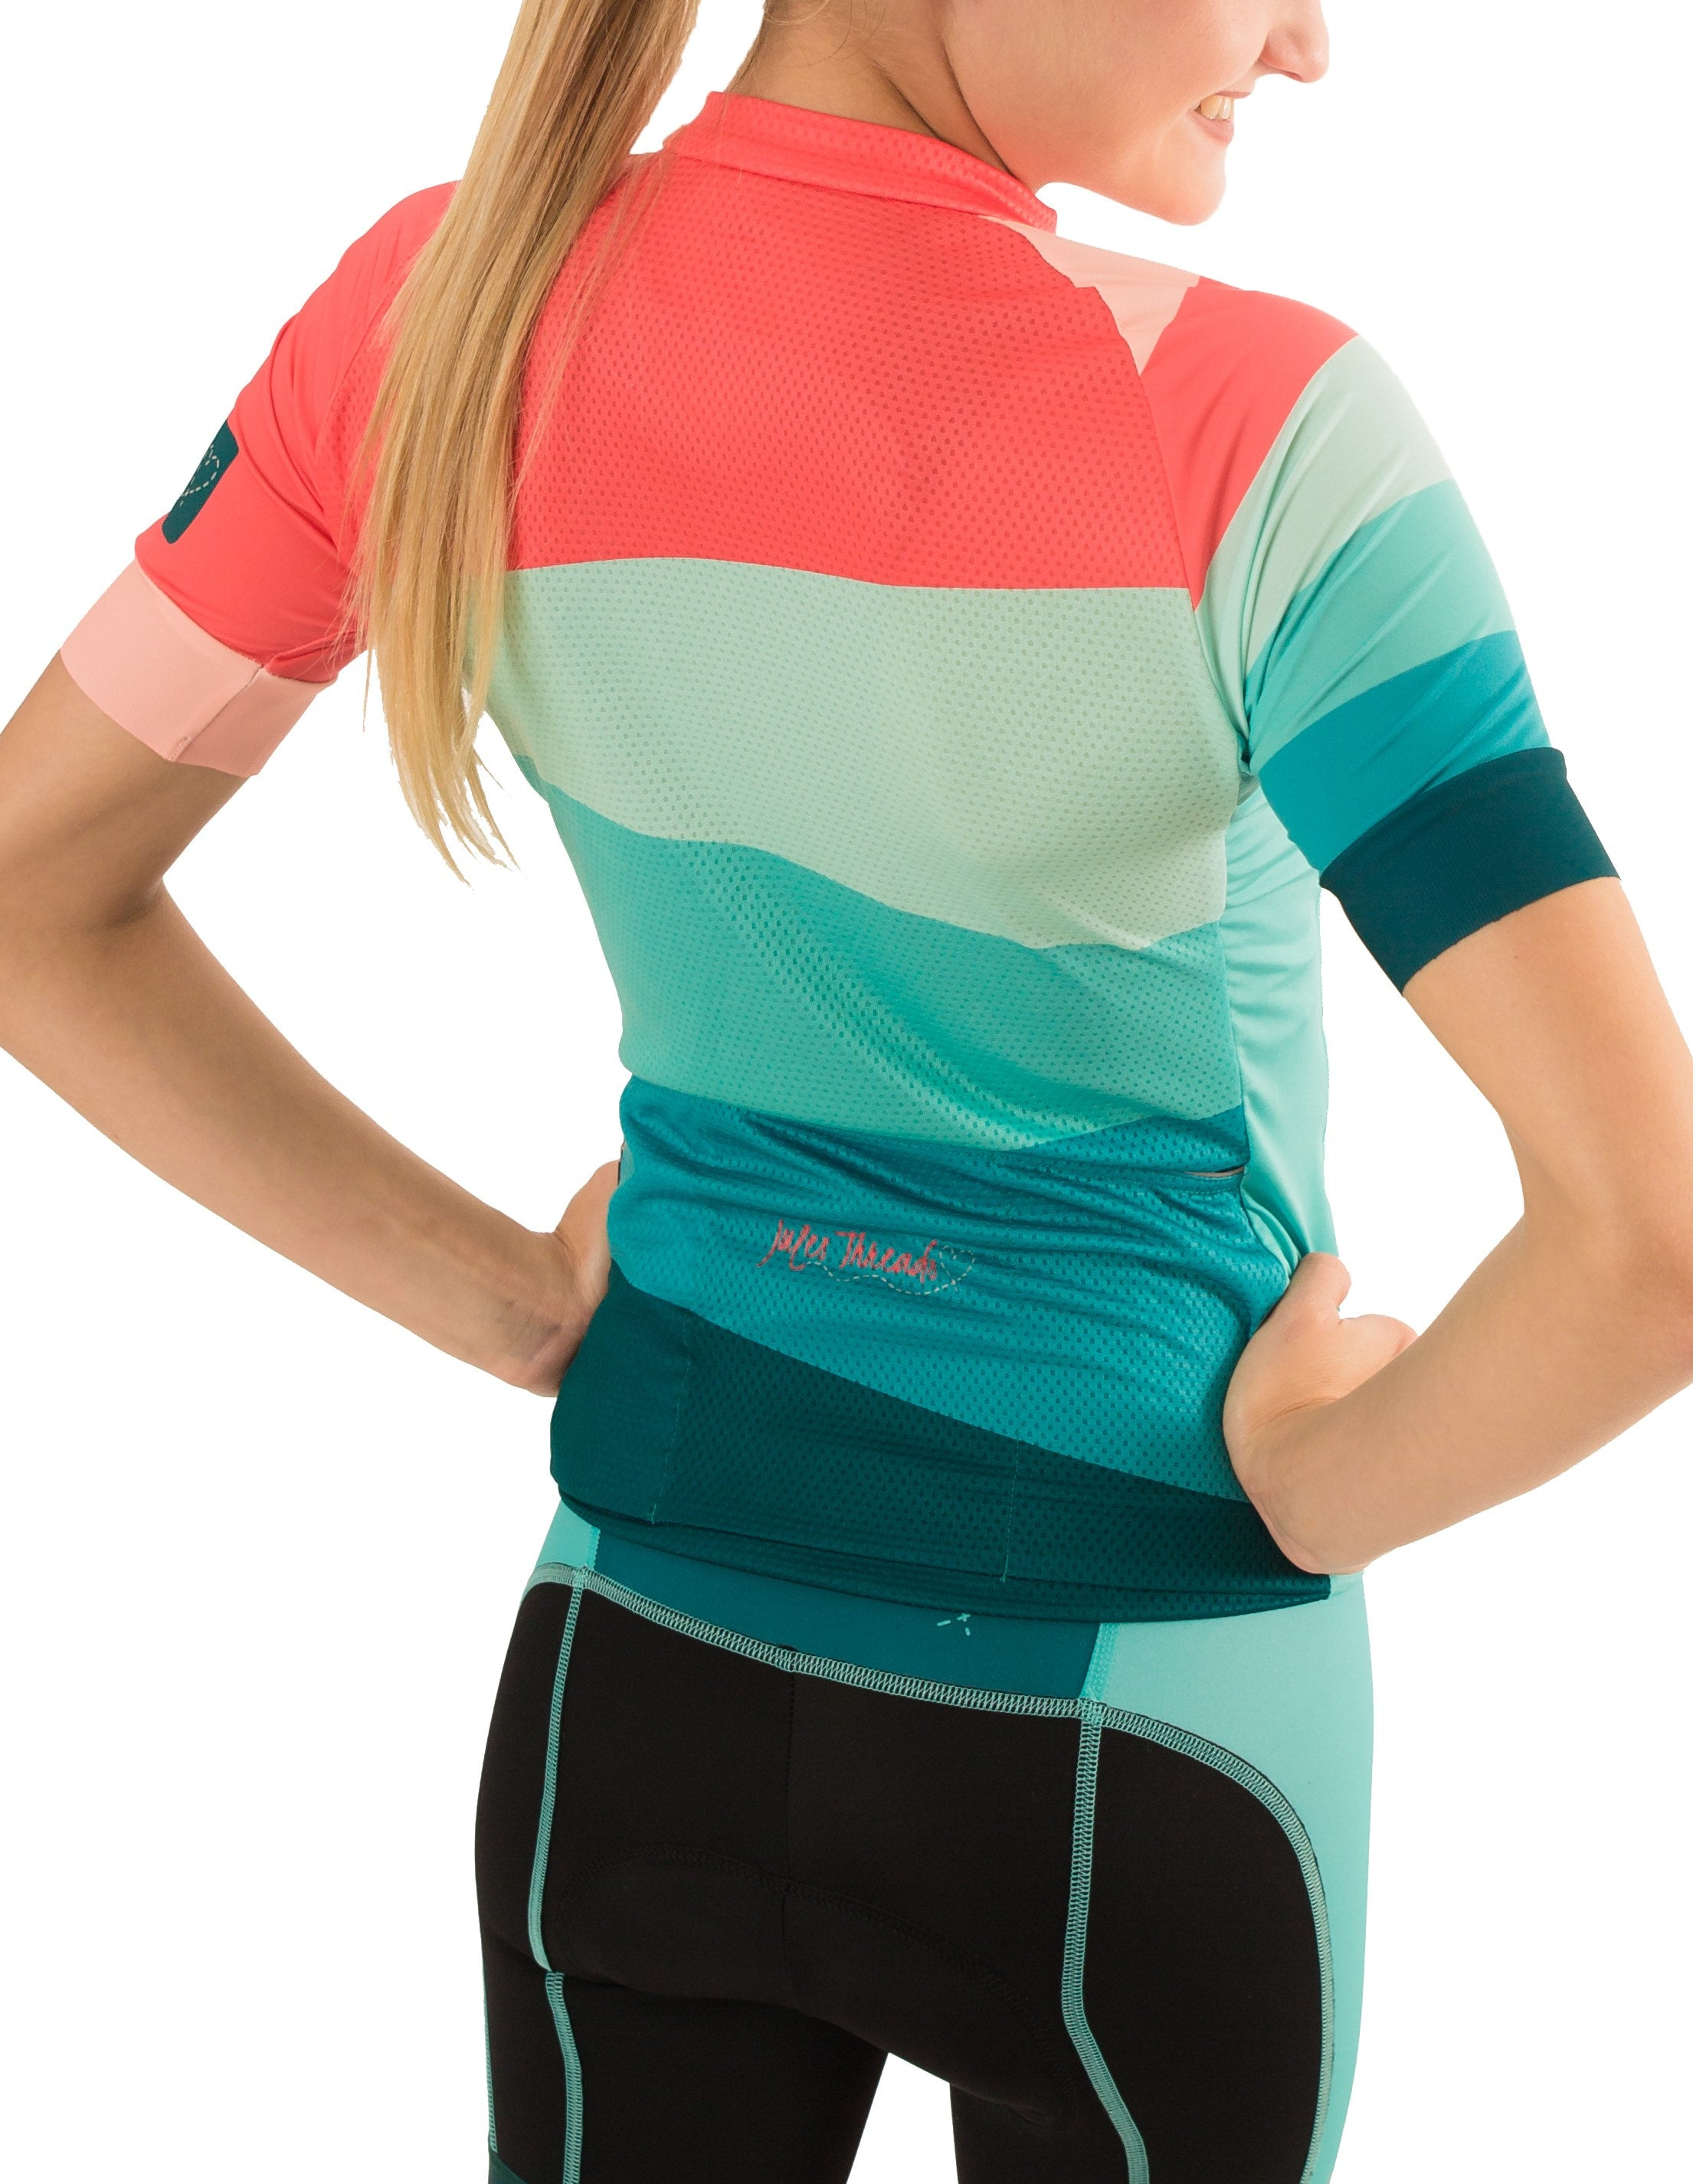 Women's Jersey - Evergreen by Jules Threads